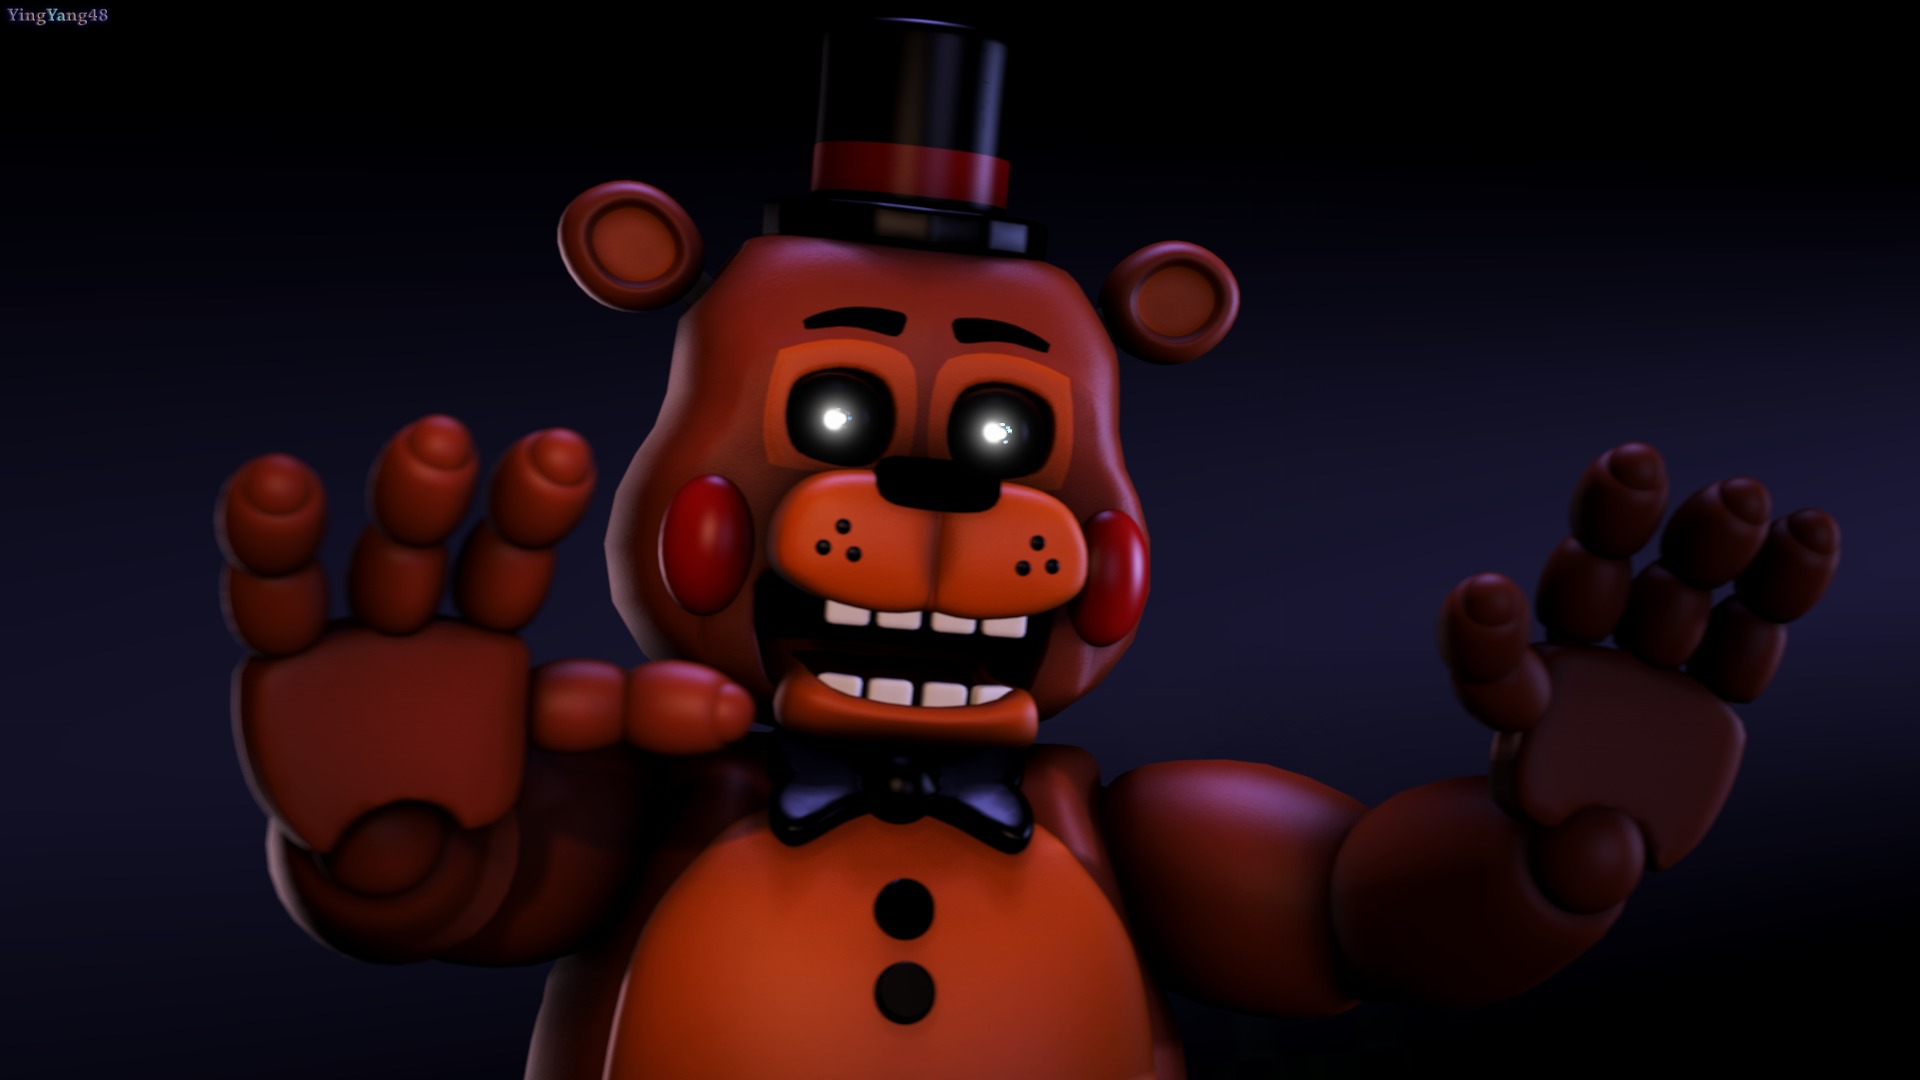 Five Nights At Freddy S 2 Wallpaper Hd Games 4k Wallpapers